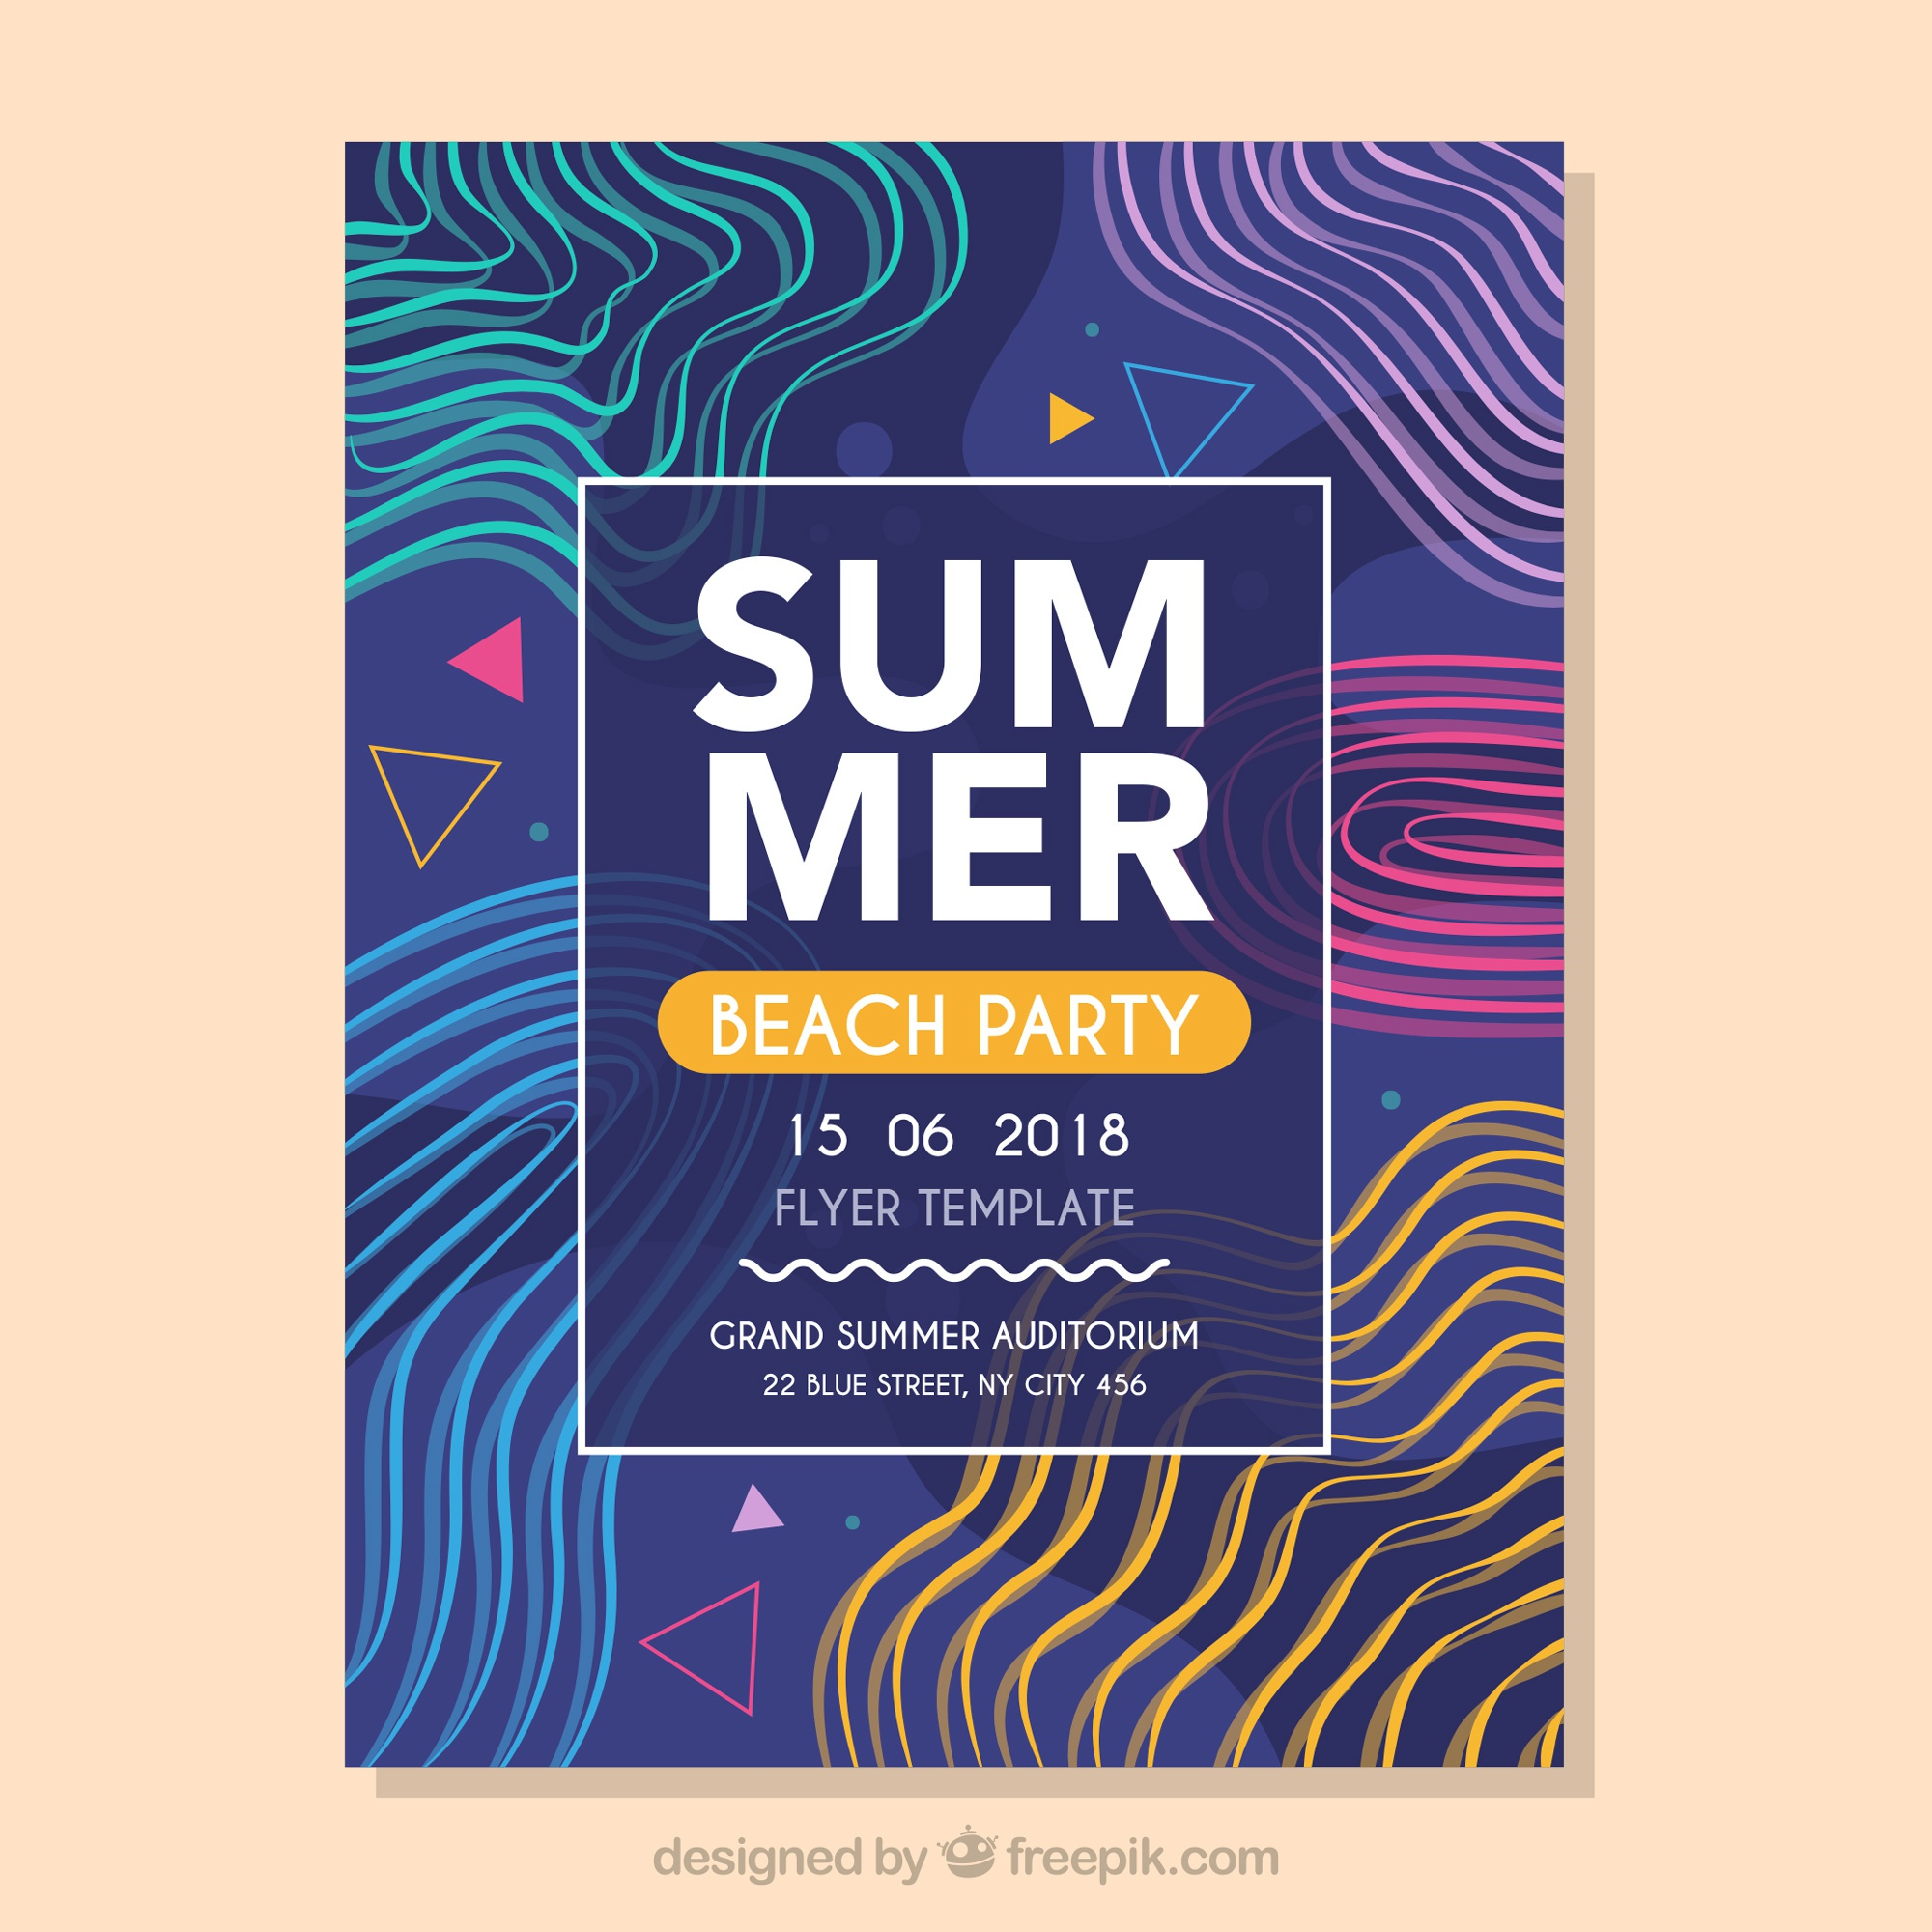 Modern music fest flyer template with abstract shapes